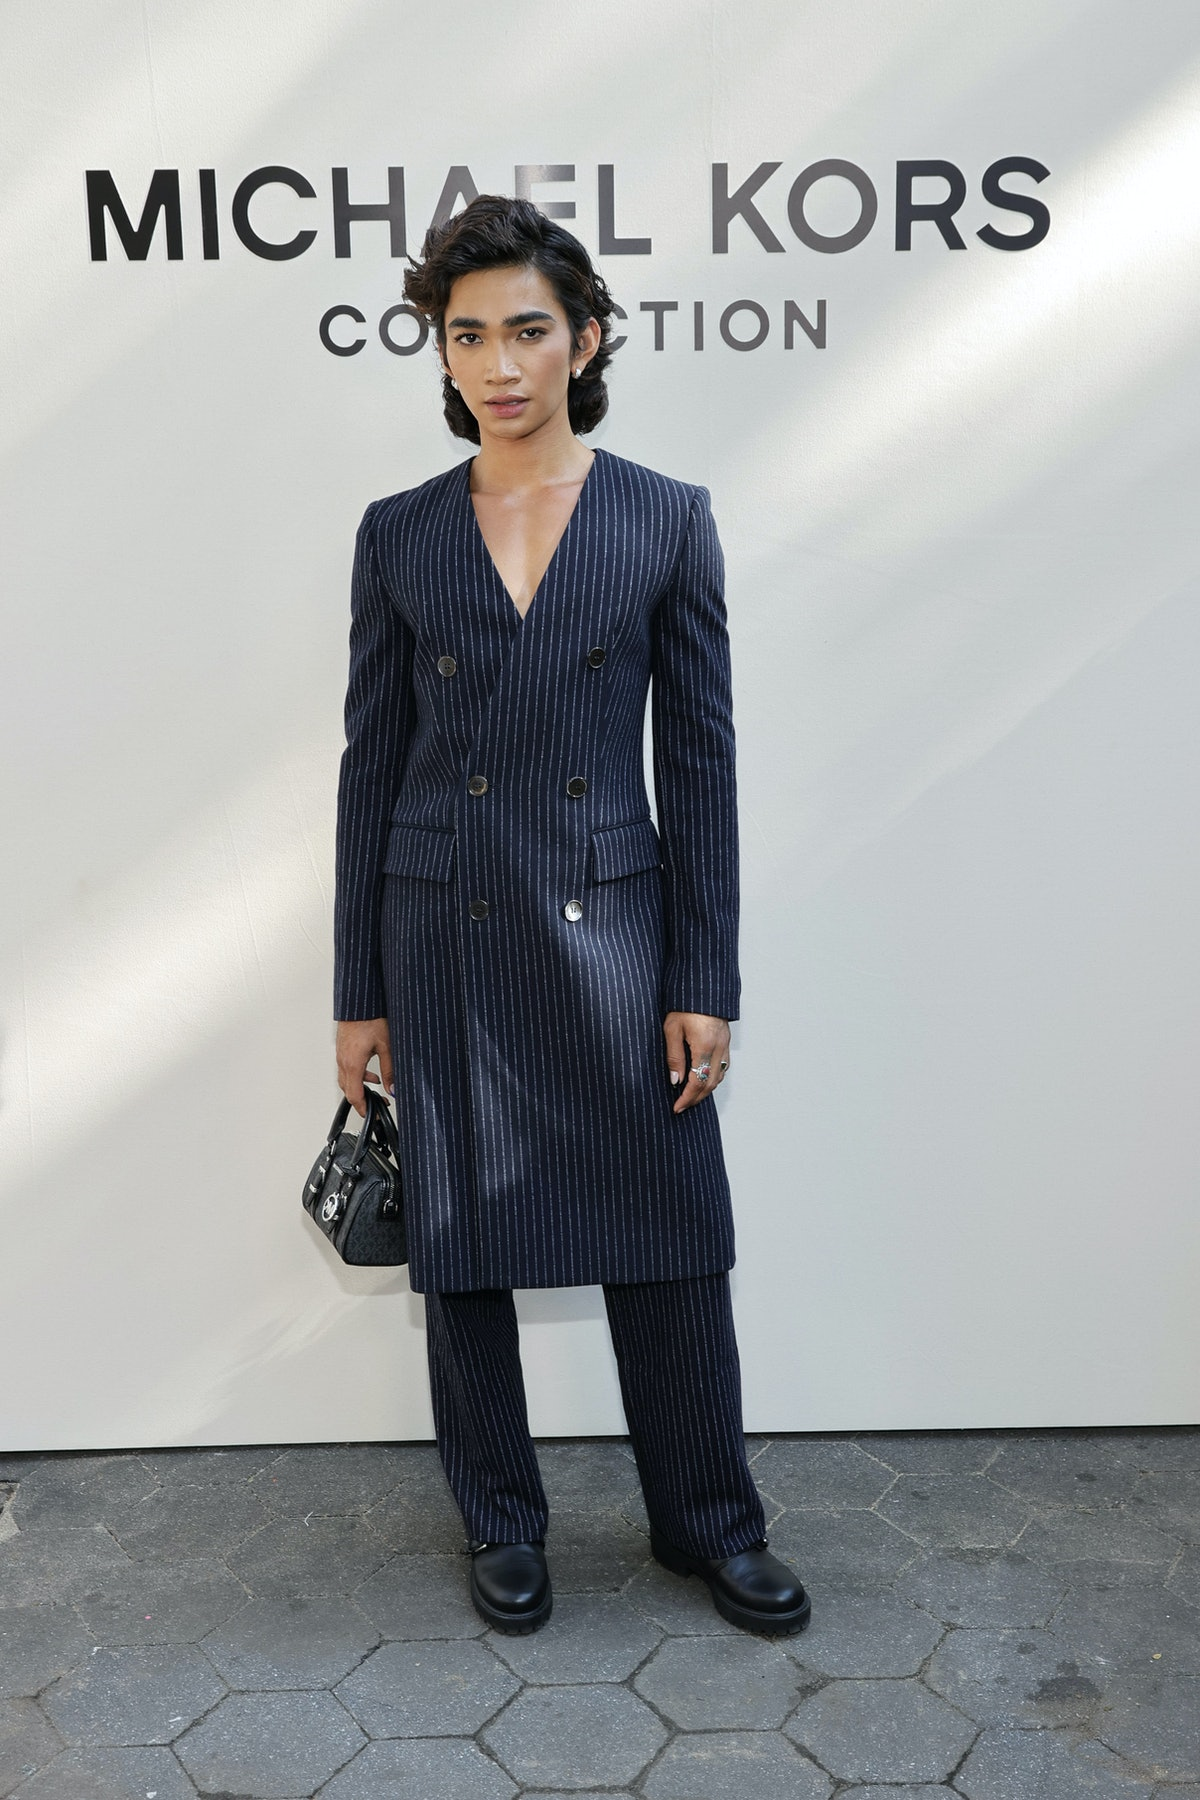 Bretman Rock attends the SP22 Michael Kors Collection Runway Show at Tavern On The Green on Septemb...